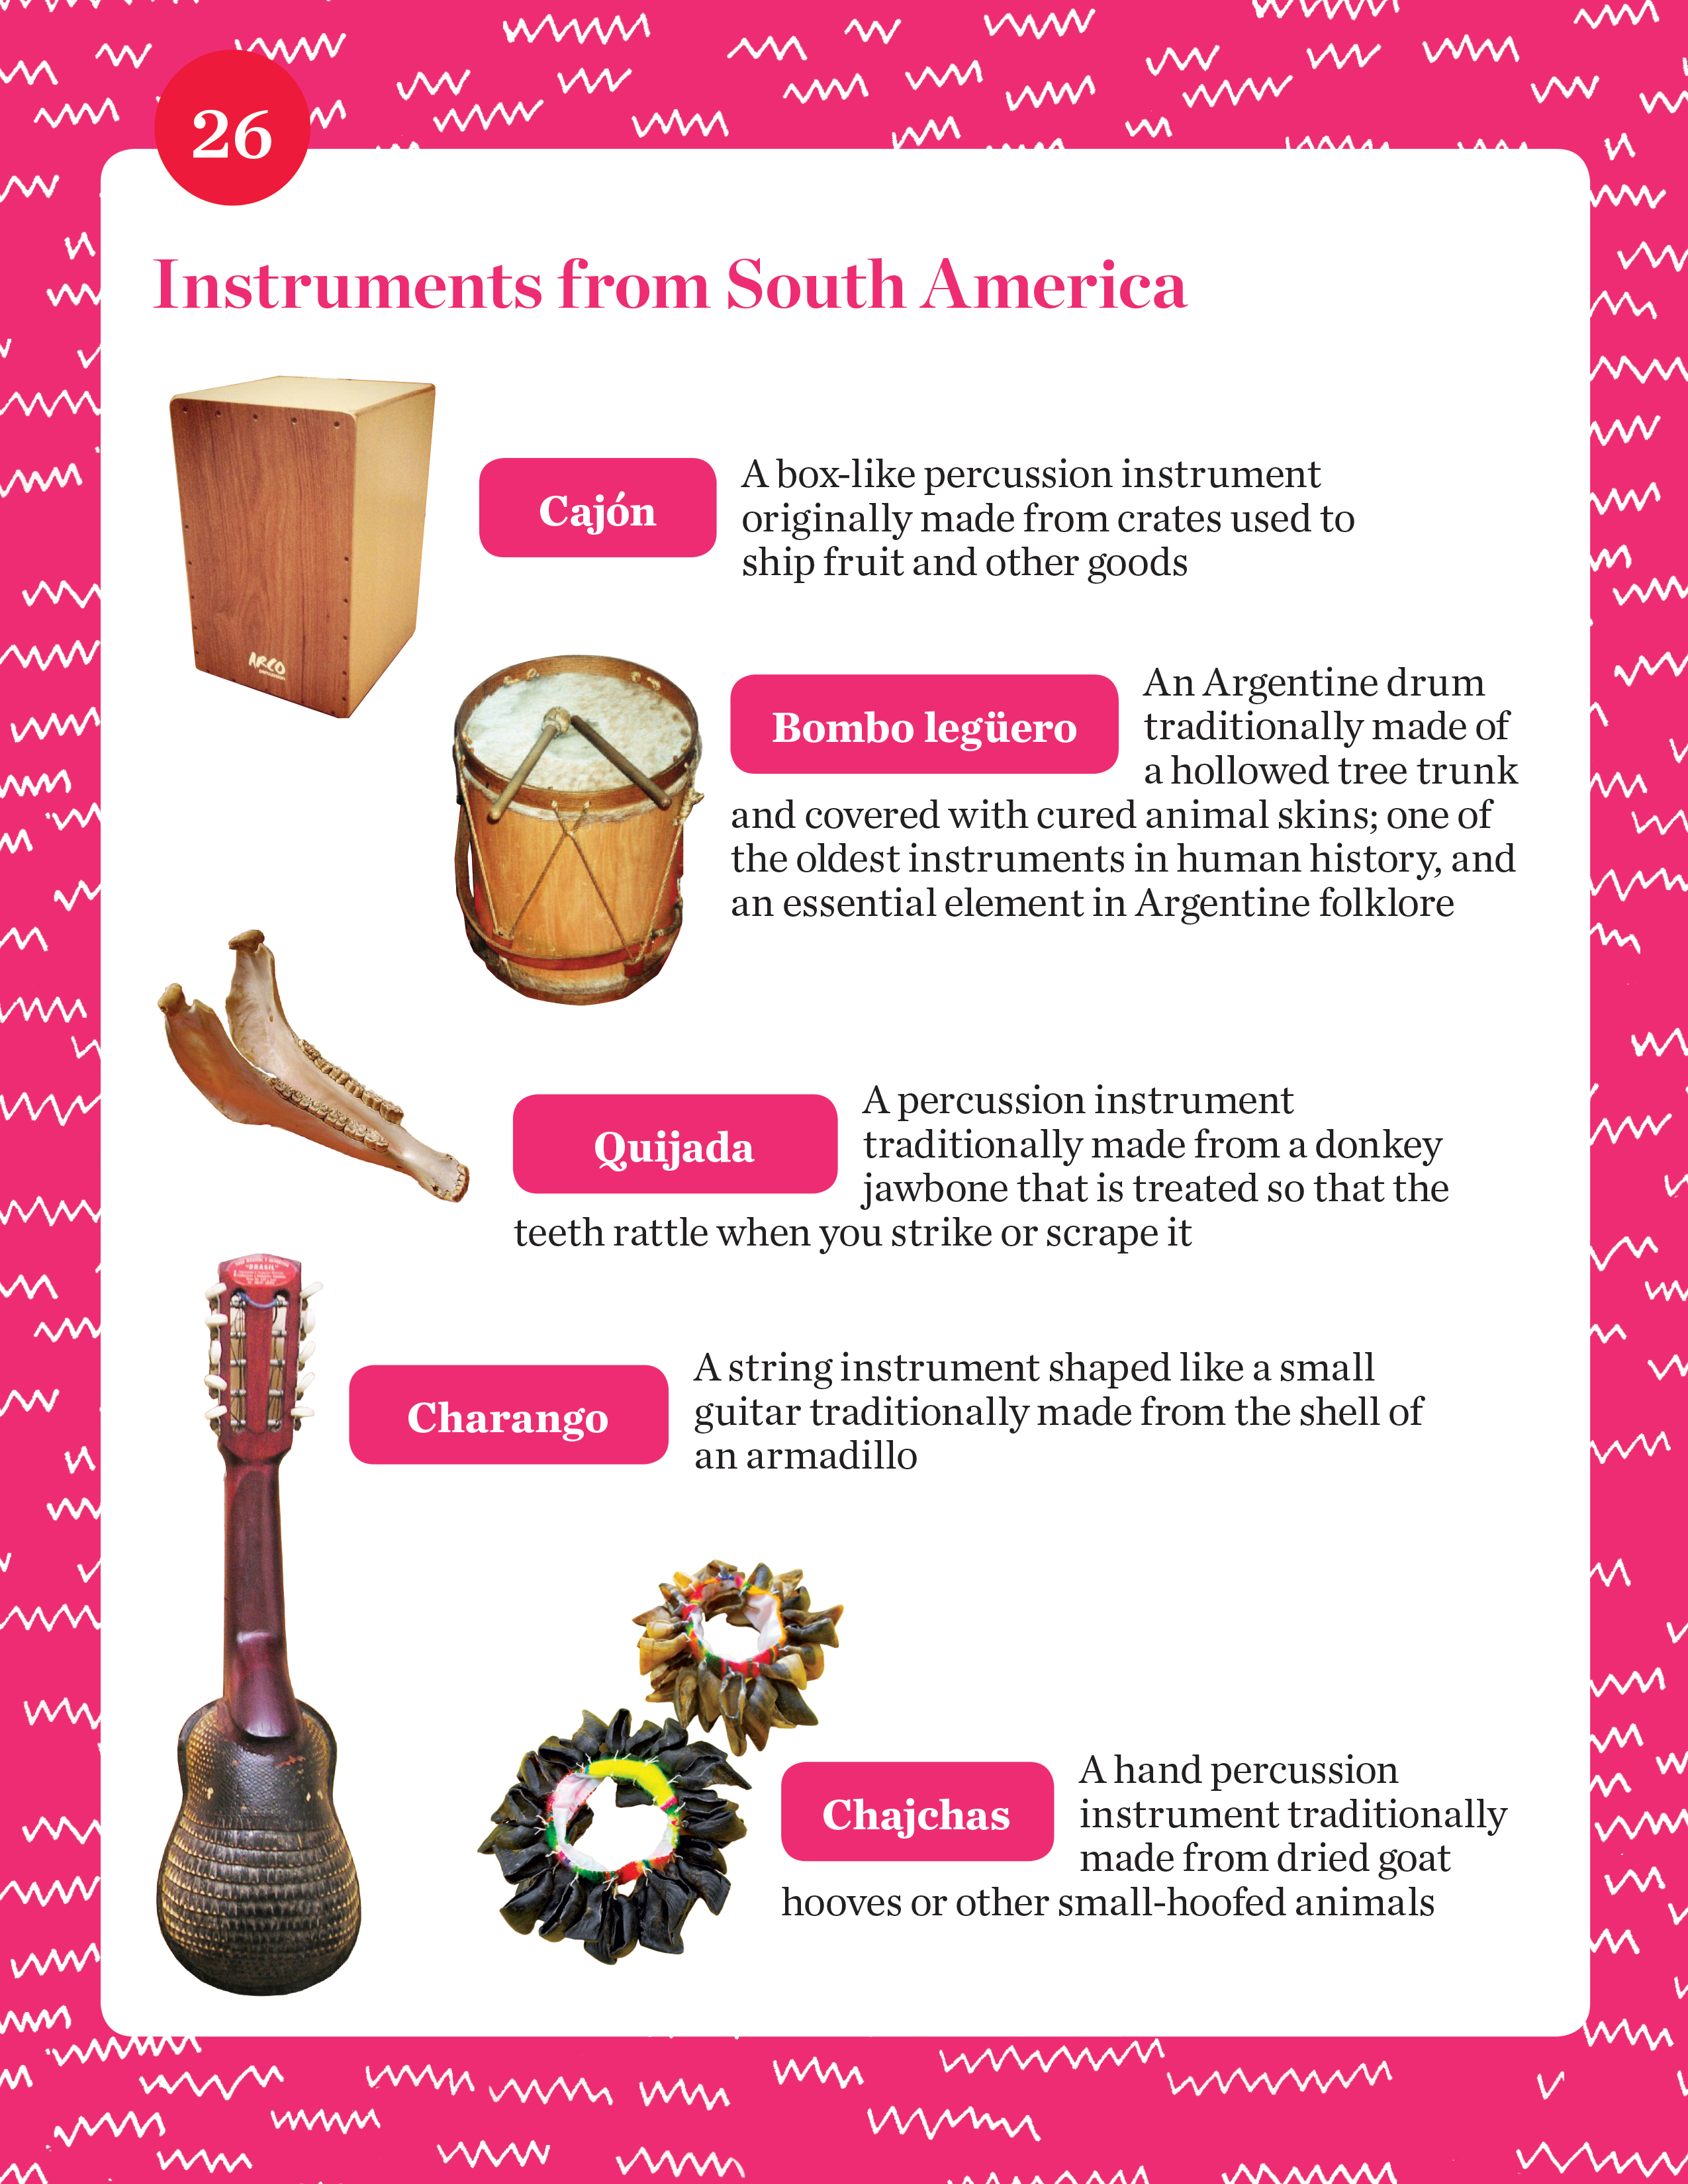 Instruments from South America